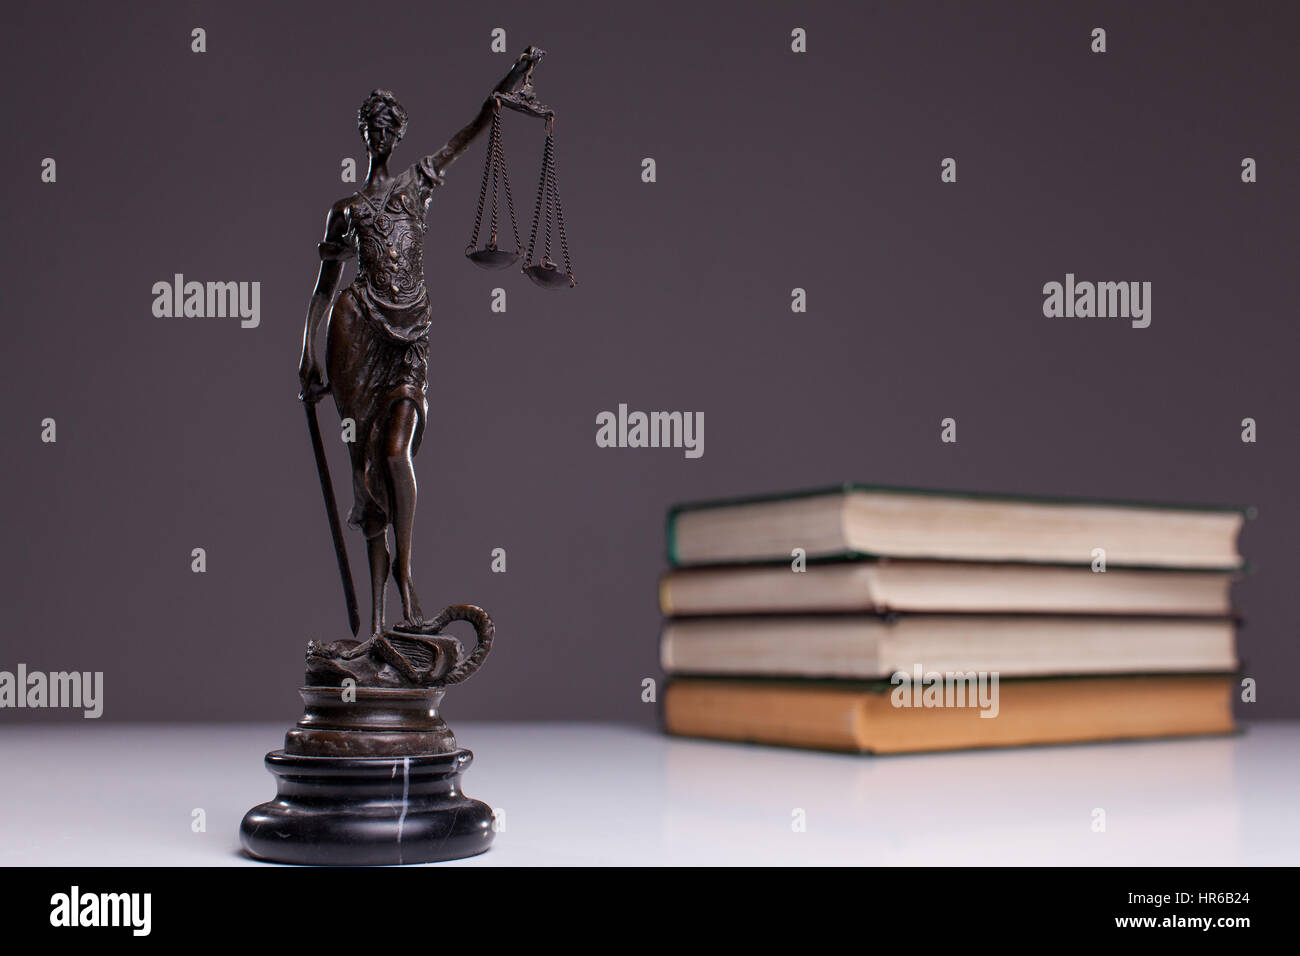 The goddess of justice on a white table against the background of the books. - Stock Image